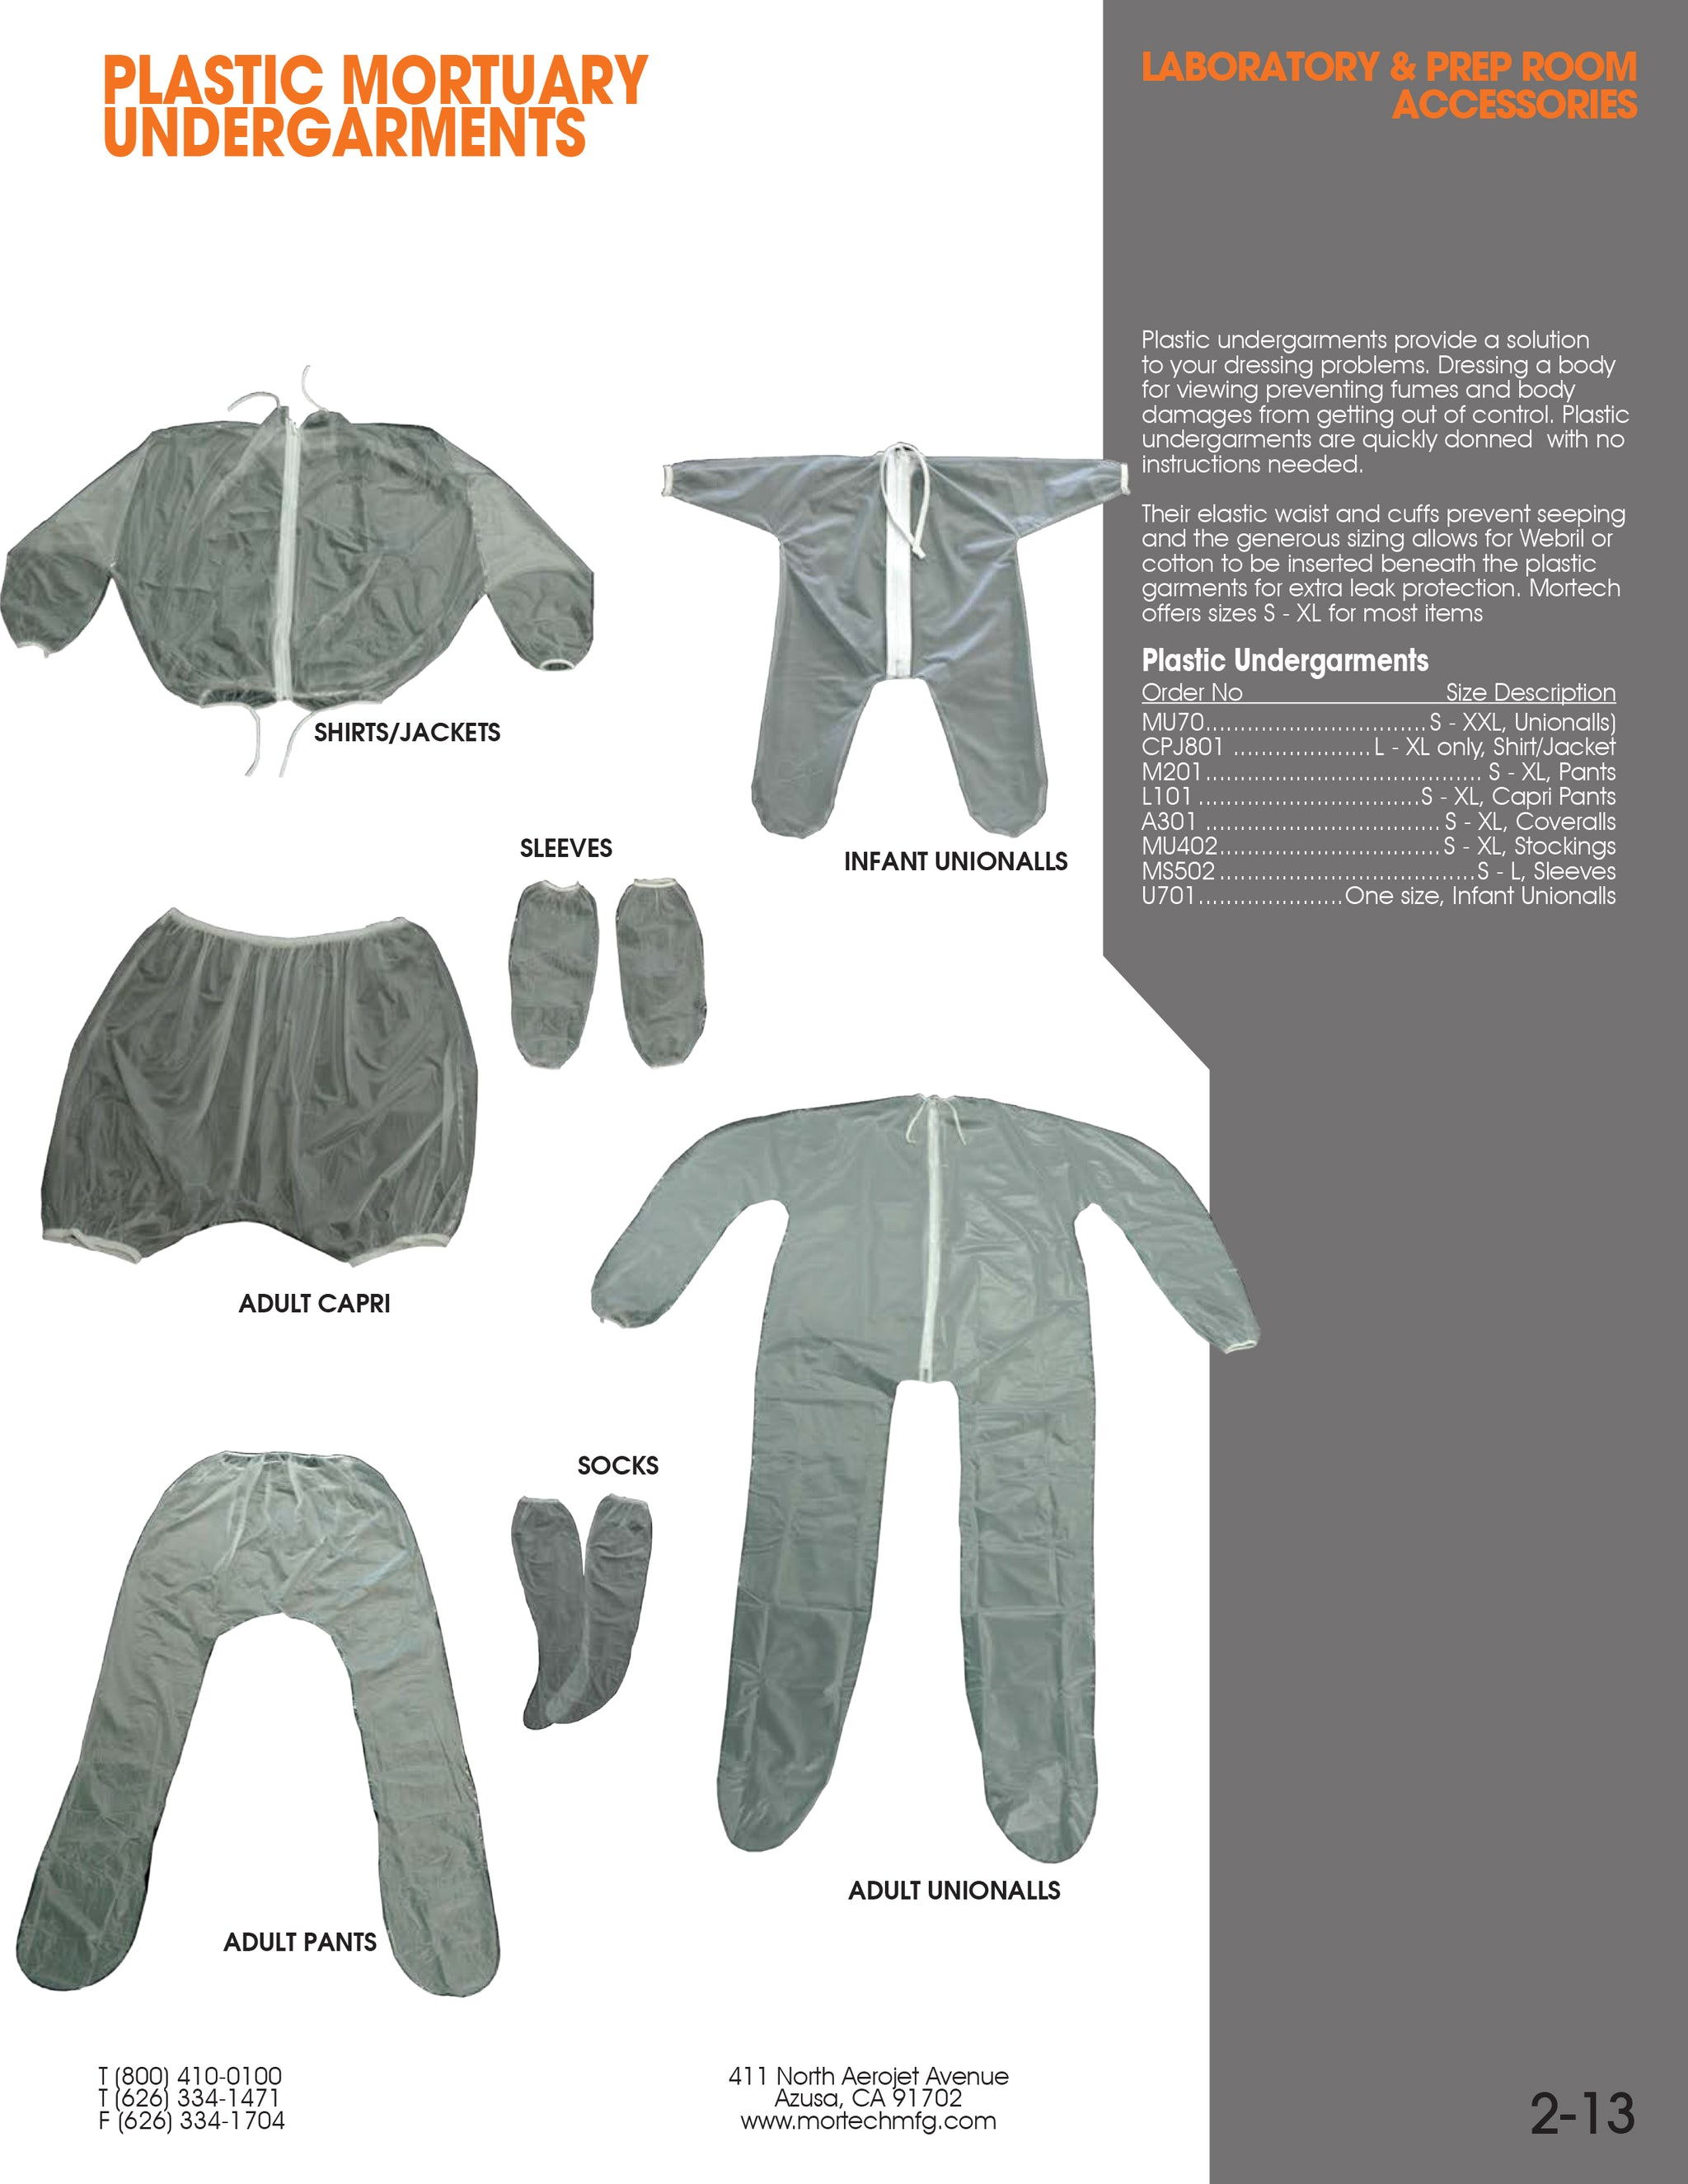 Plastic Undergarments - Shirts/Jackets-Laboratory Accessory-Mortech Manufacturing Company Inc. Quality Stainless Steel Autopsy, Morgue, Funeral Home, Necropsy, Veterinary / Anatomy, Dissection Equipment and Accessories